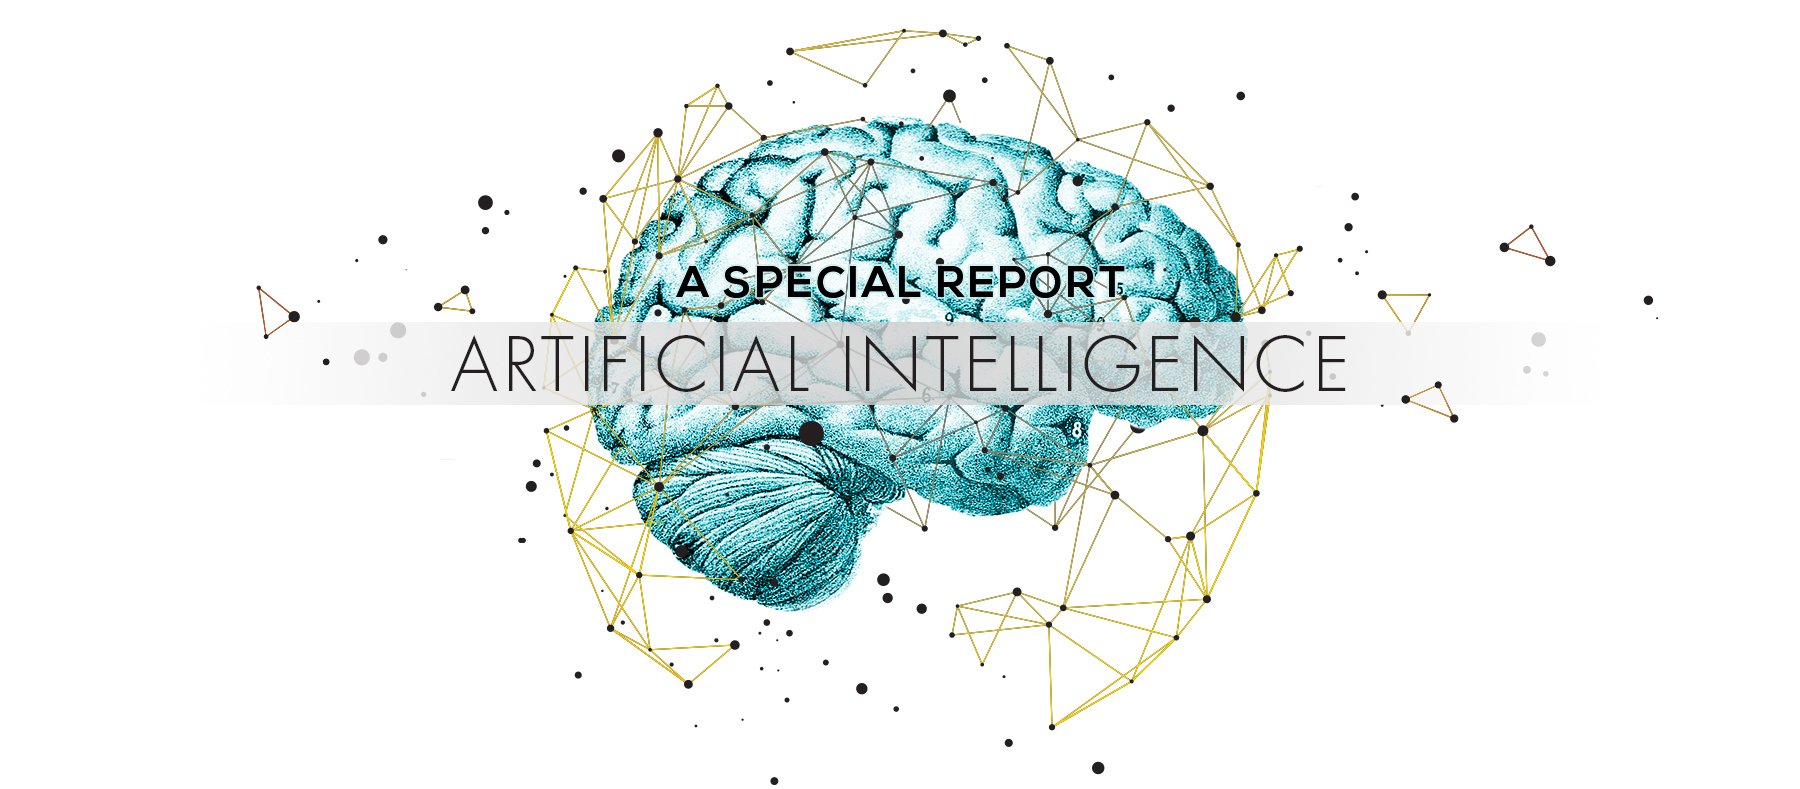 Read more of the AI Report Features